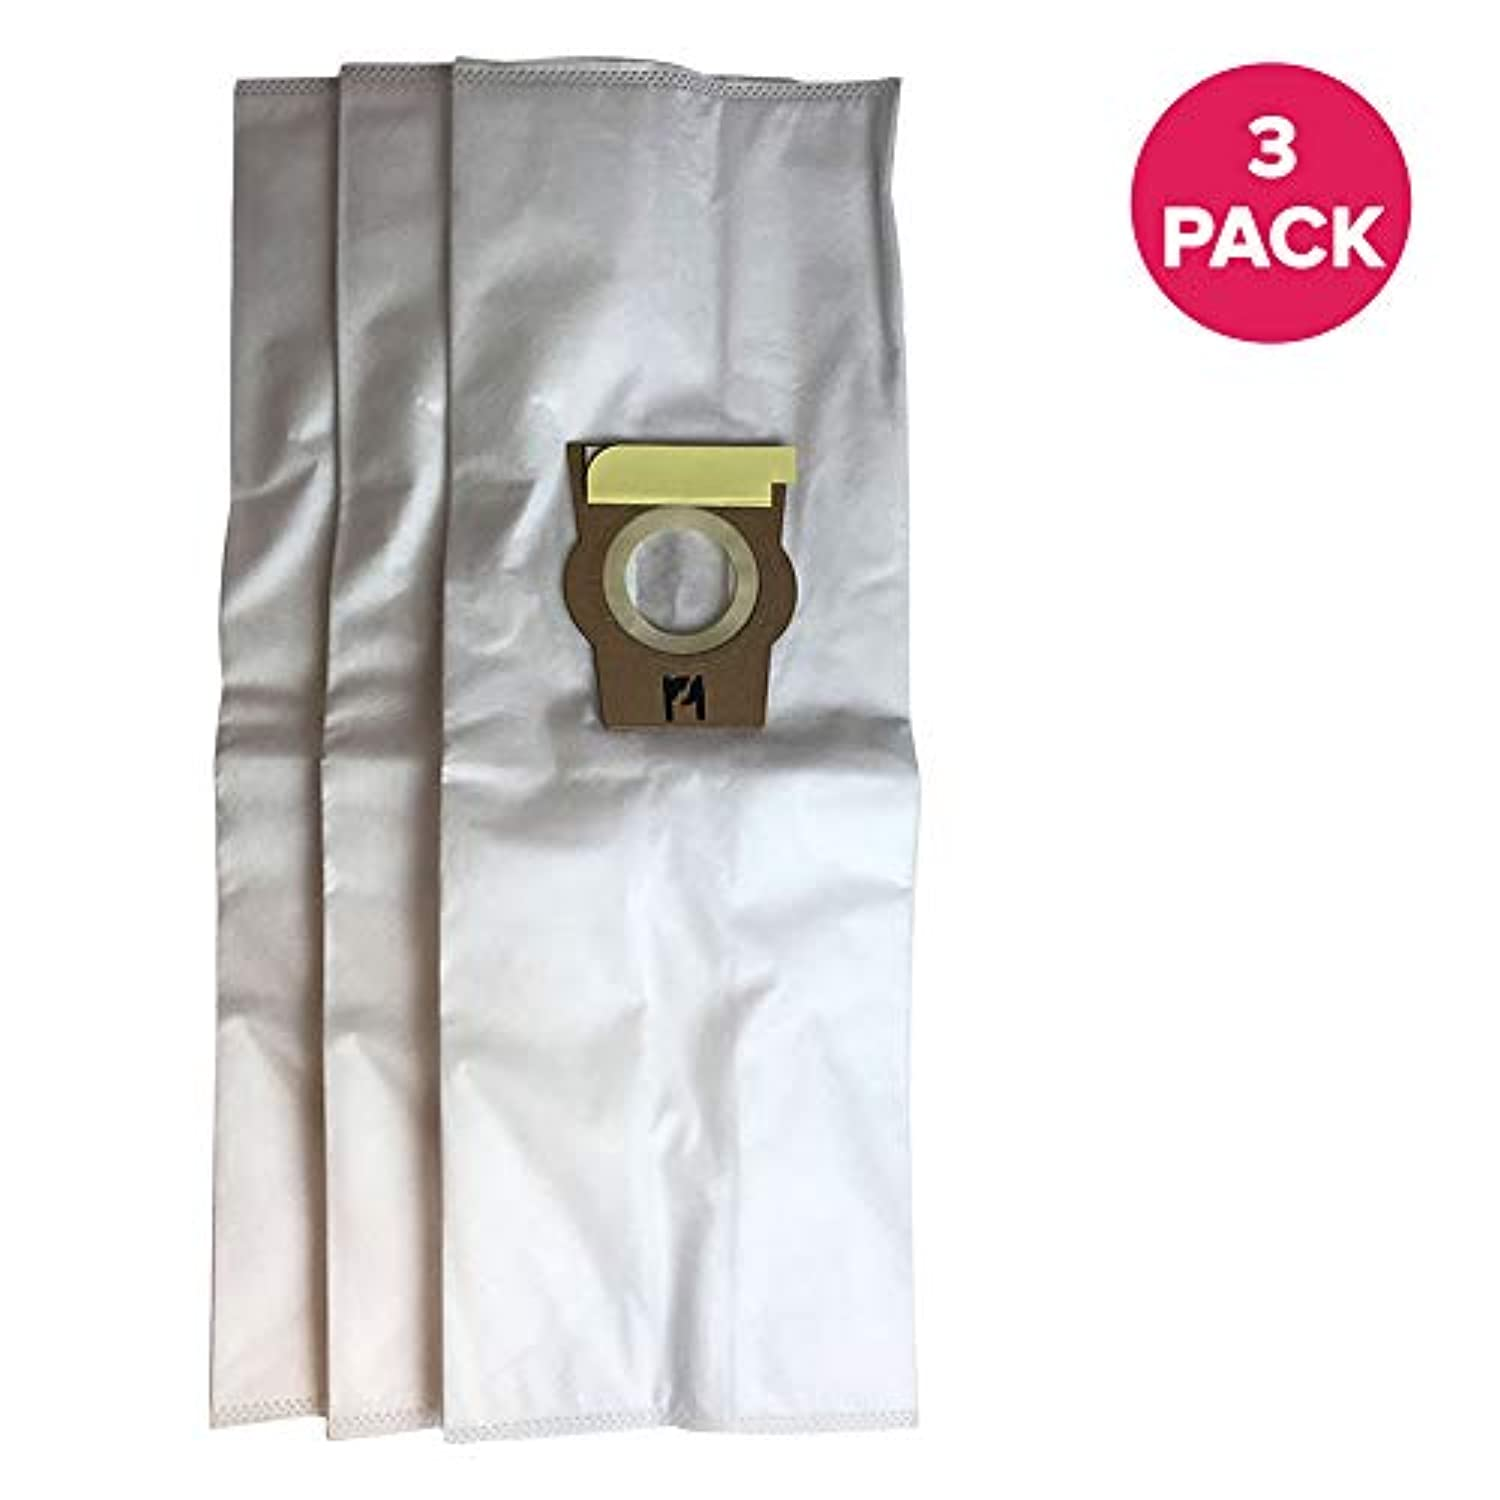 3 Kirby F Style Allergen Filtration Vacuum Cleaner Bags Designed To Fit Kirby Style F Ultimate G Diamond Edition, Ultimate G series, Gsix Vacuums. Part 204808; Designed & Engineered by Crucial Vacuum